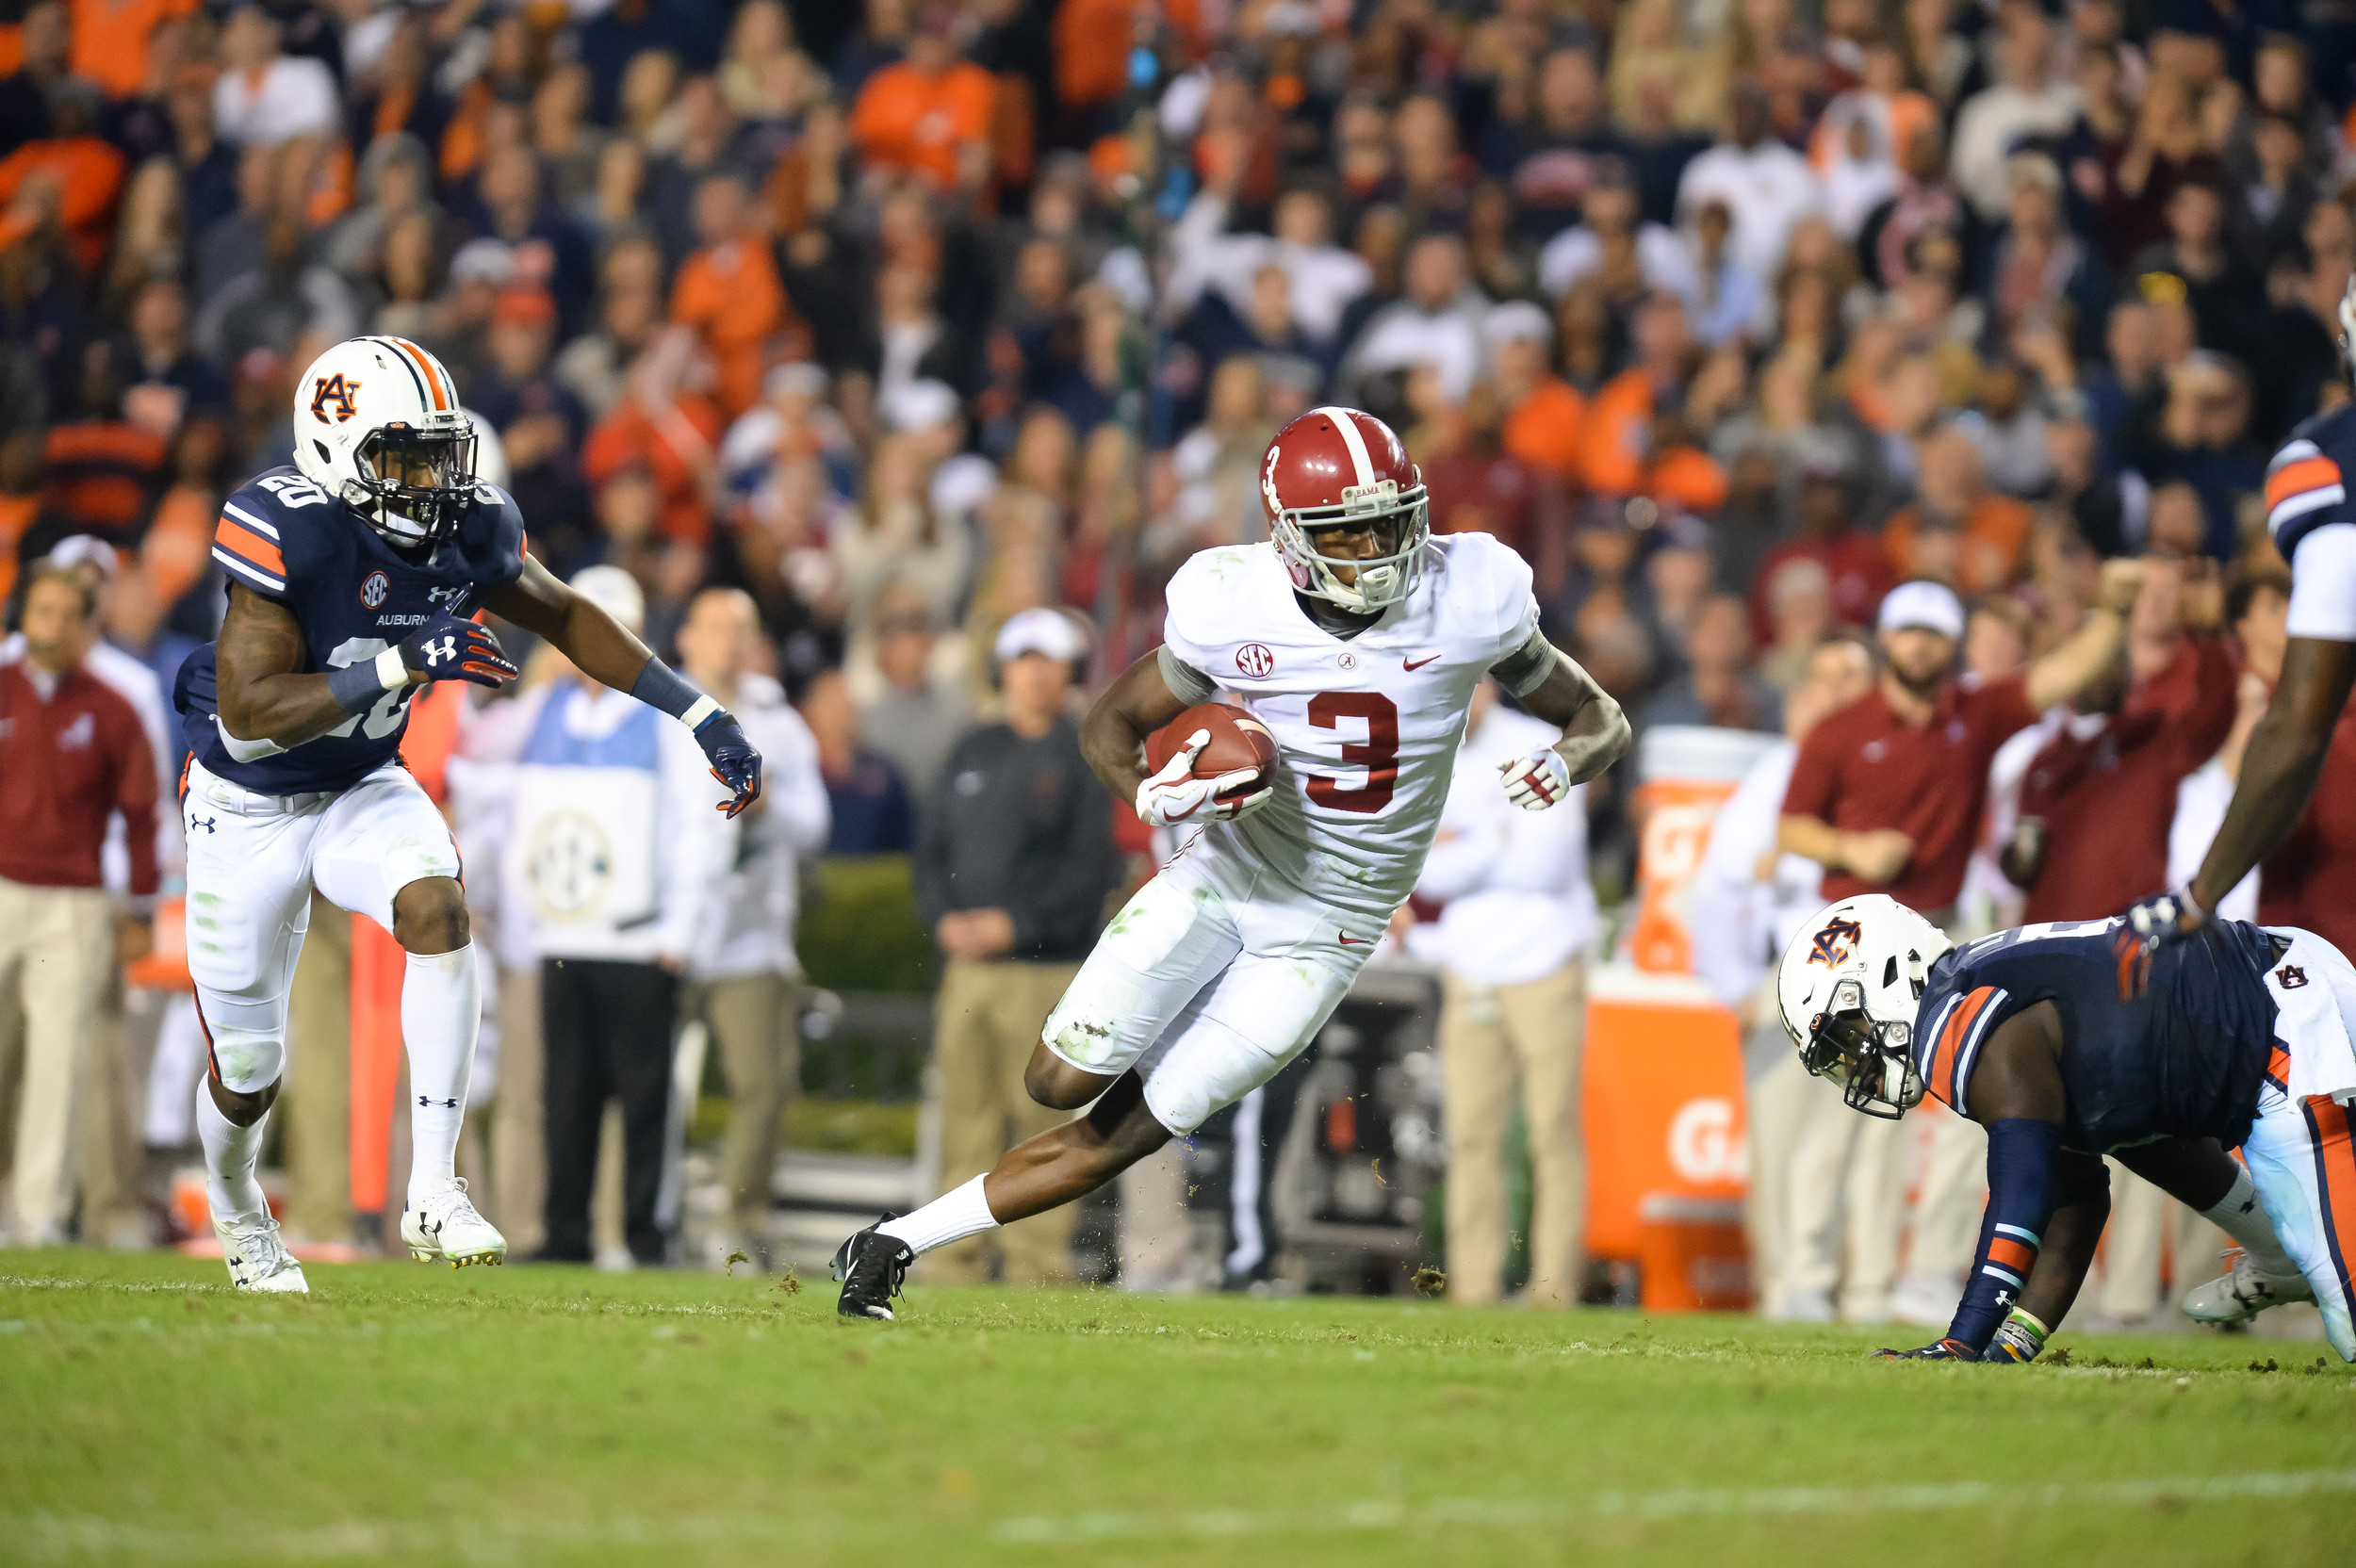 Alabama Crimson Tide wide receiver Calvin Ridley (3) runs after making a catch during the second half of Saturday's game, at Jordan-Hare Stadium.